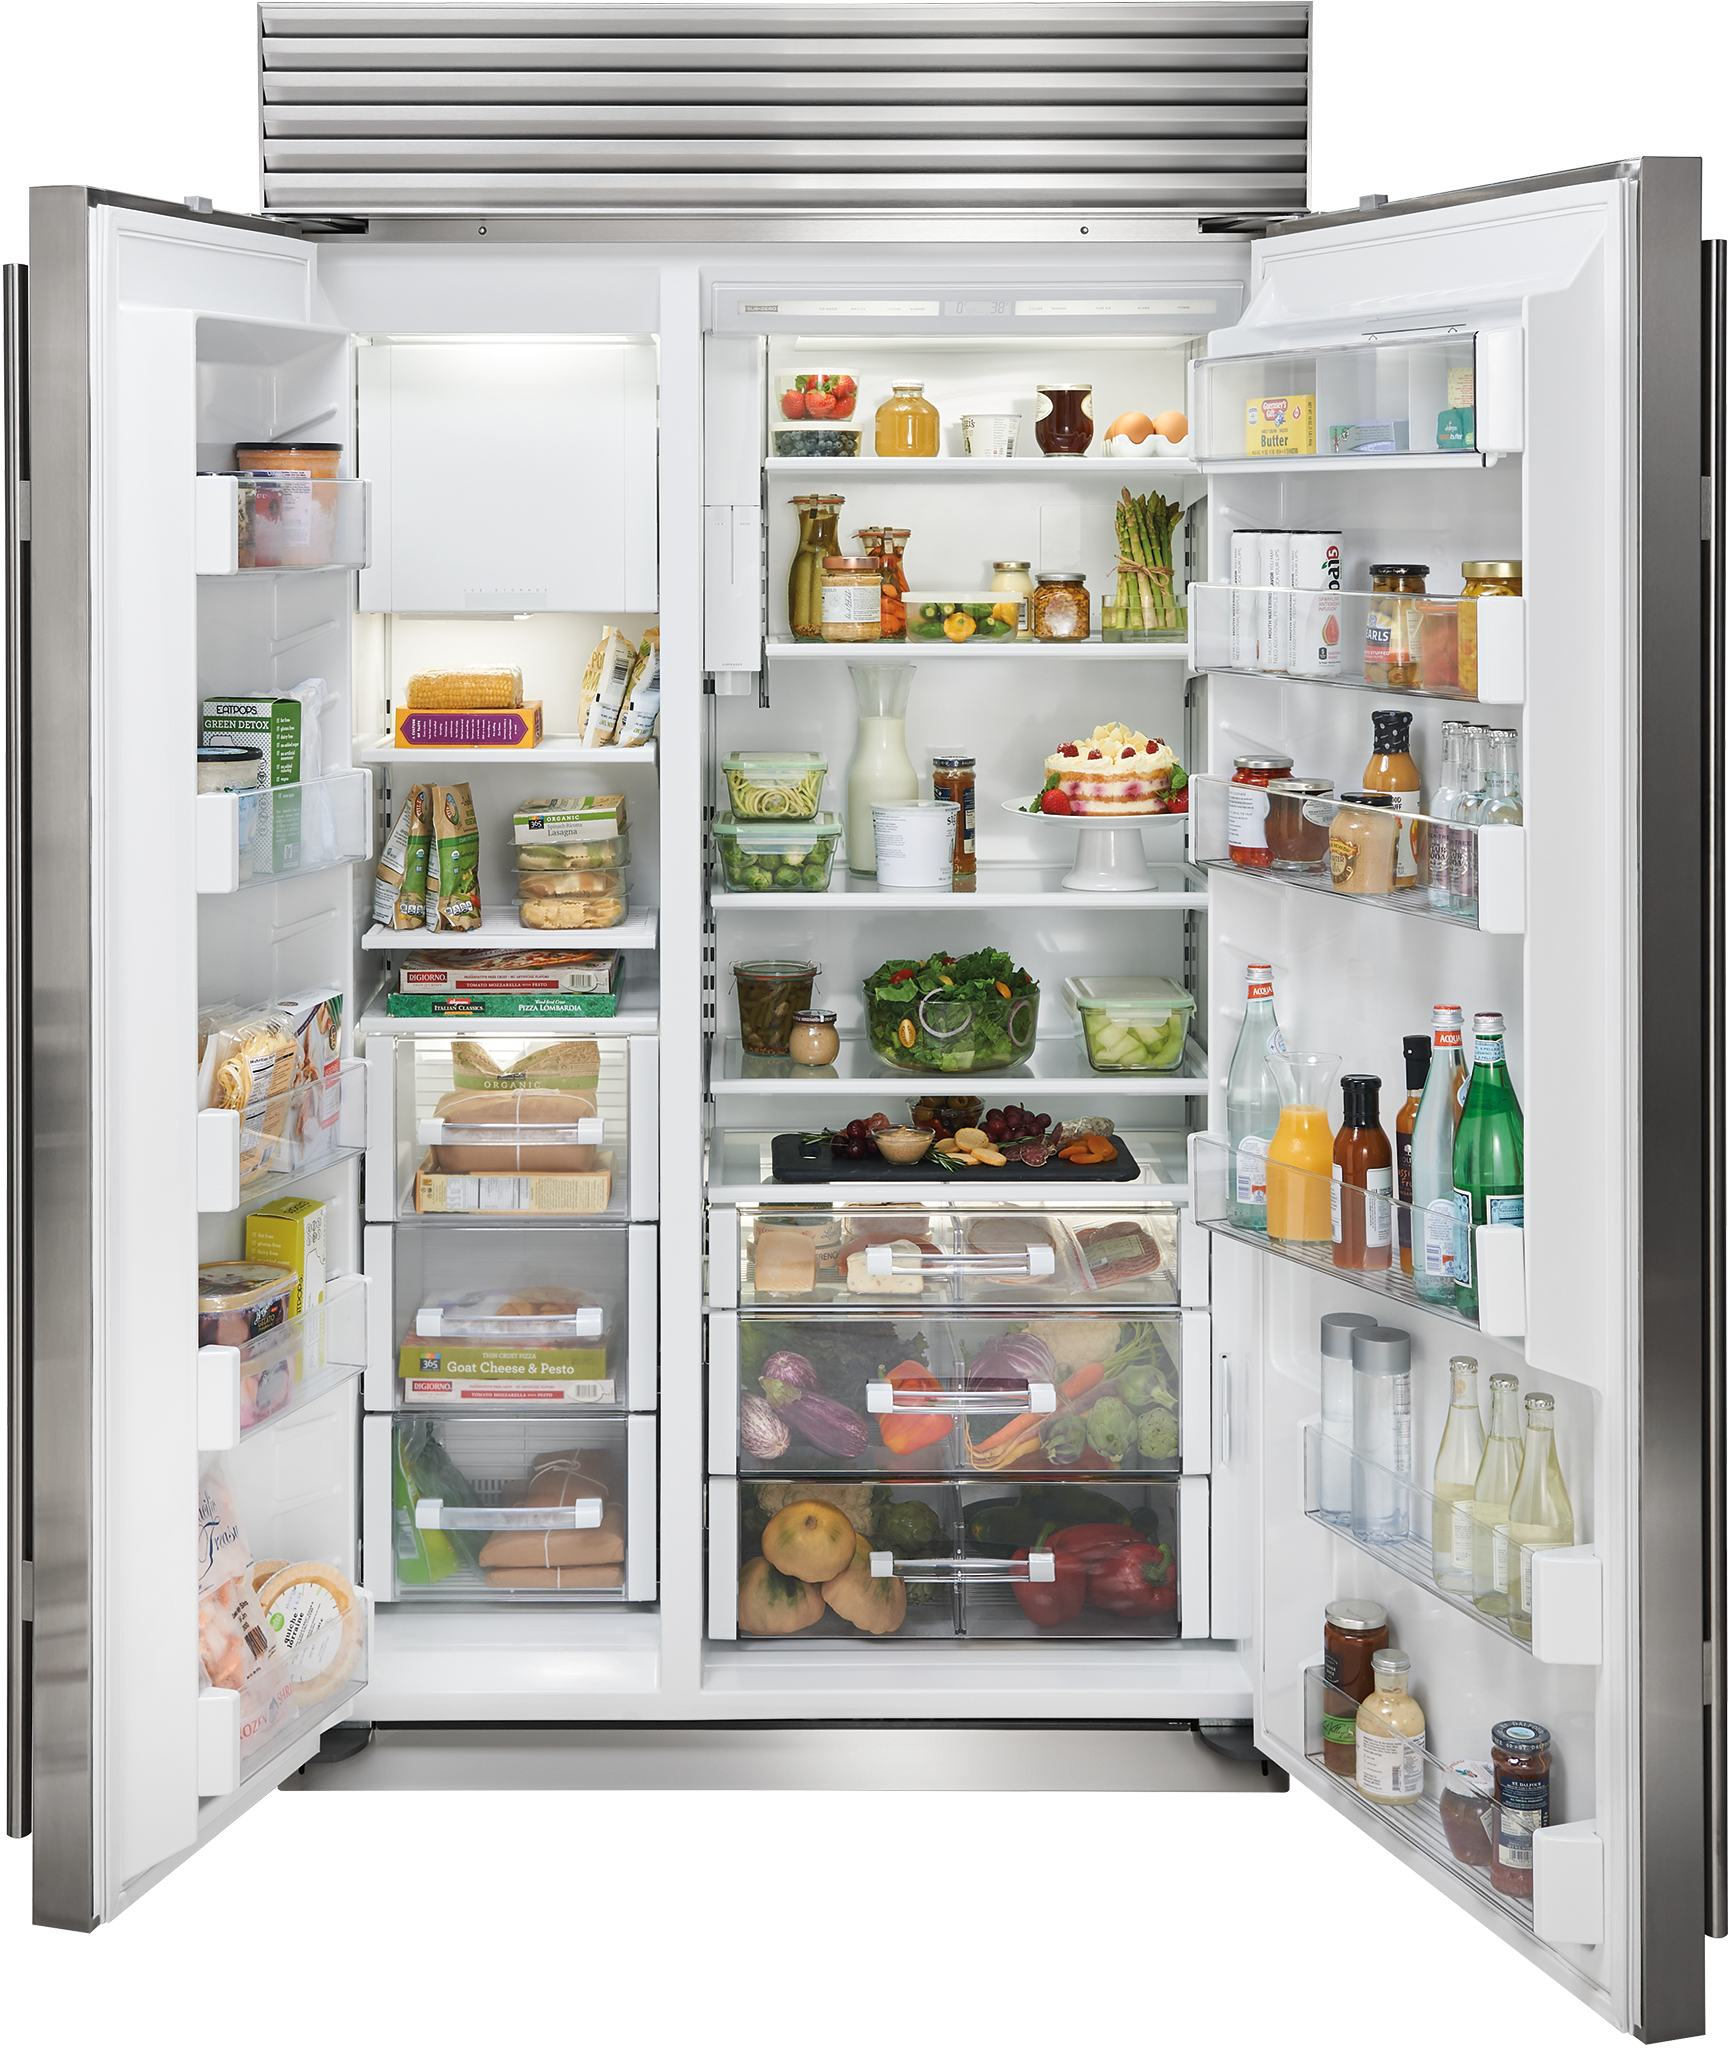 Sub Zero 48 Classic Side By Side Refrigerator Freezer With Internal Dispenser Panel Ready Bi 48sid O Side By Side Refrigerator Refrigerator Freezer Refrigerator